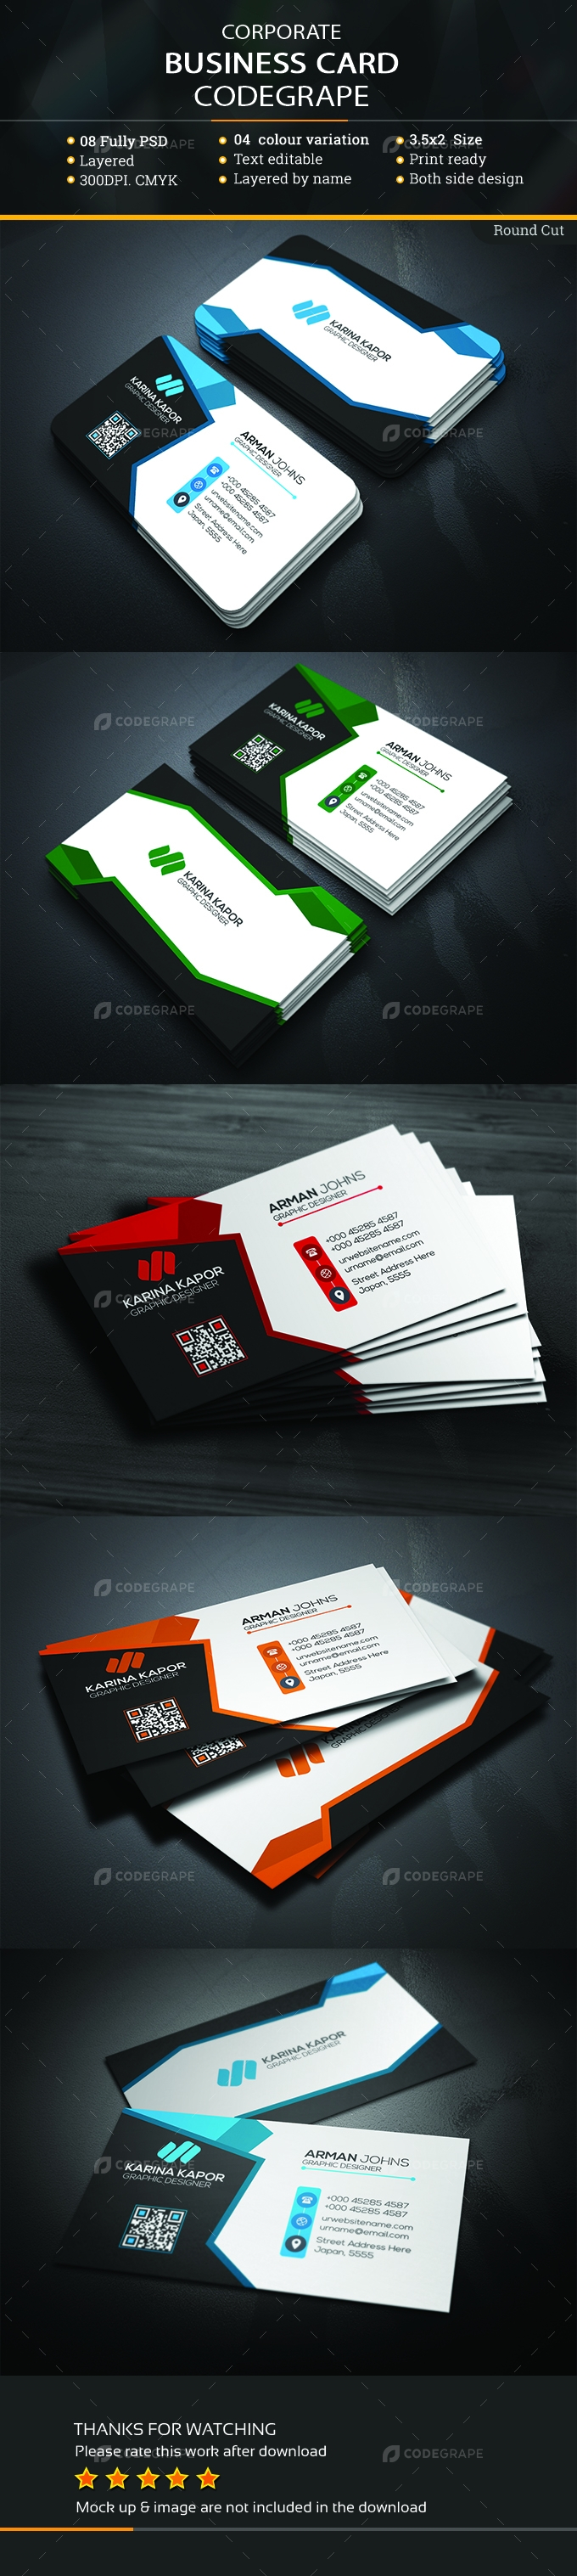 Corporate business card print codegrape corporate business card reheart Image collections